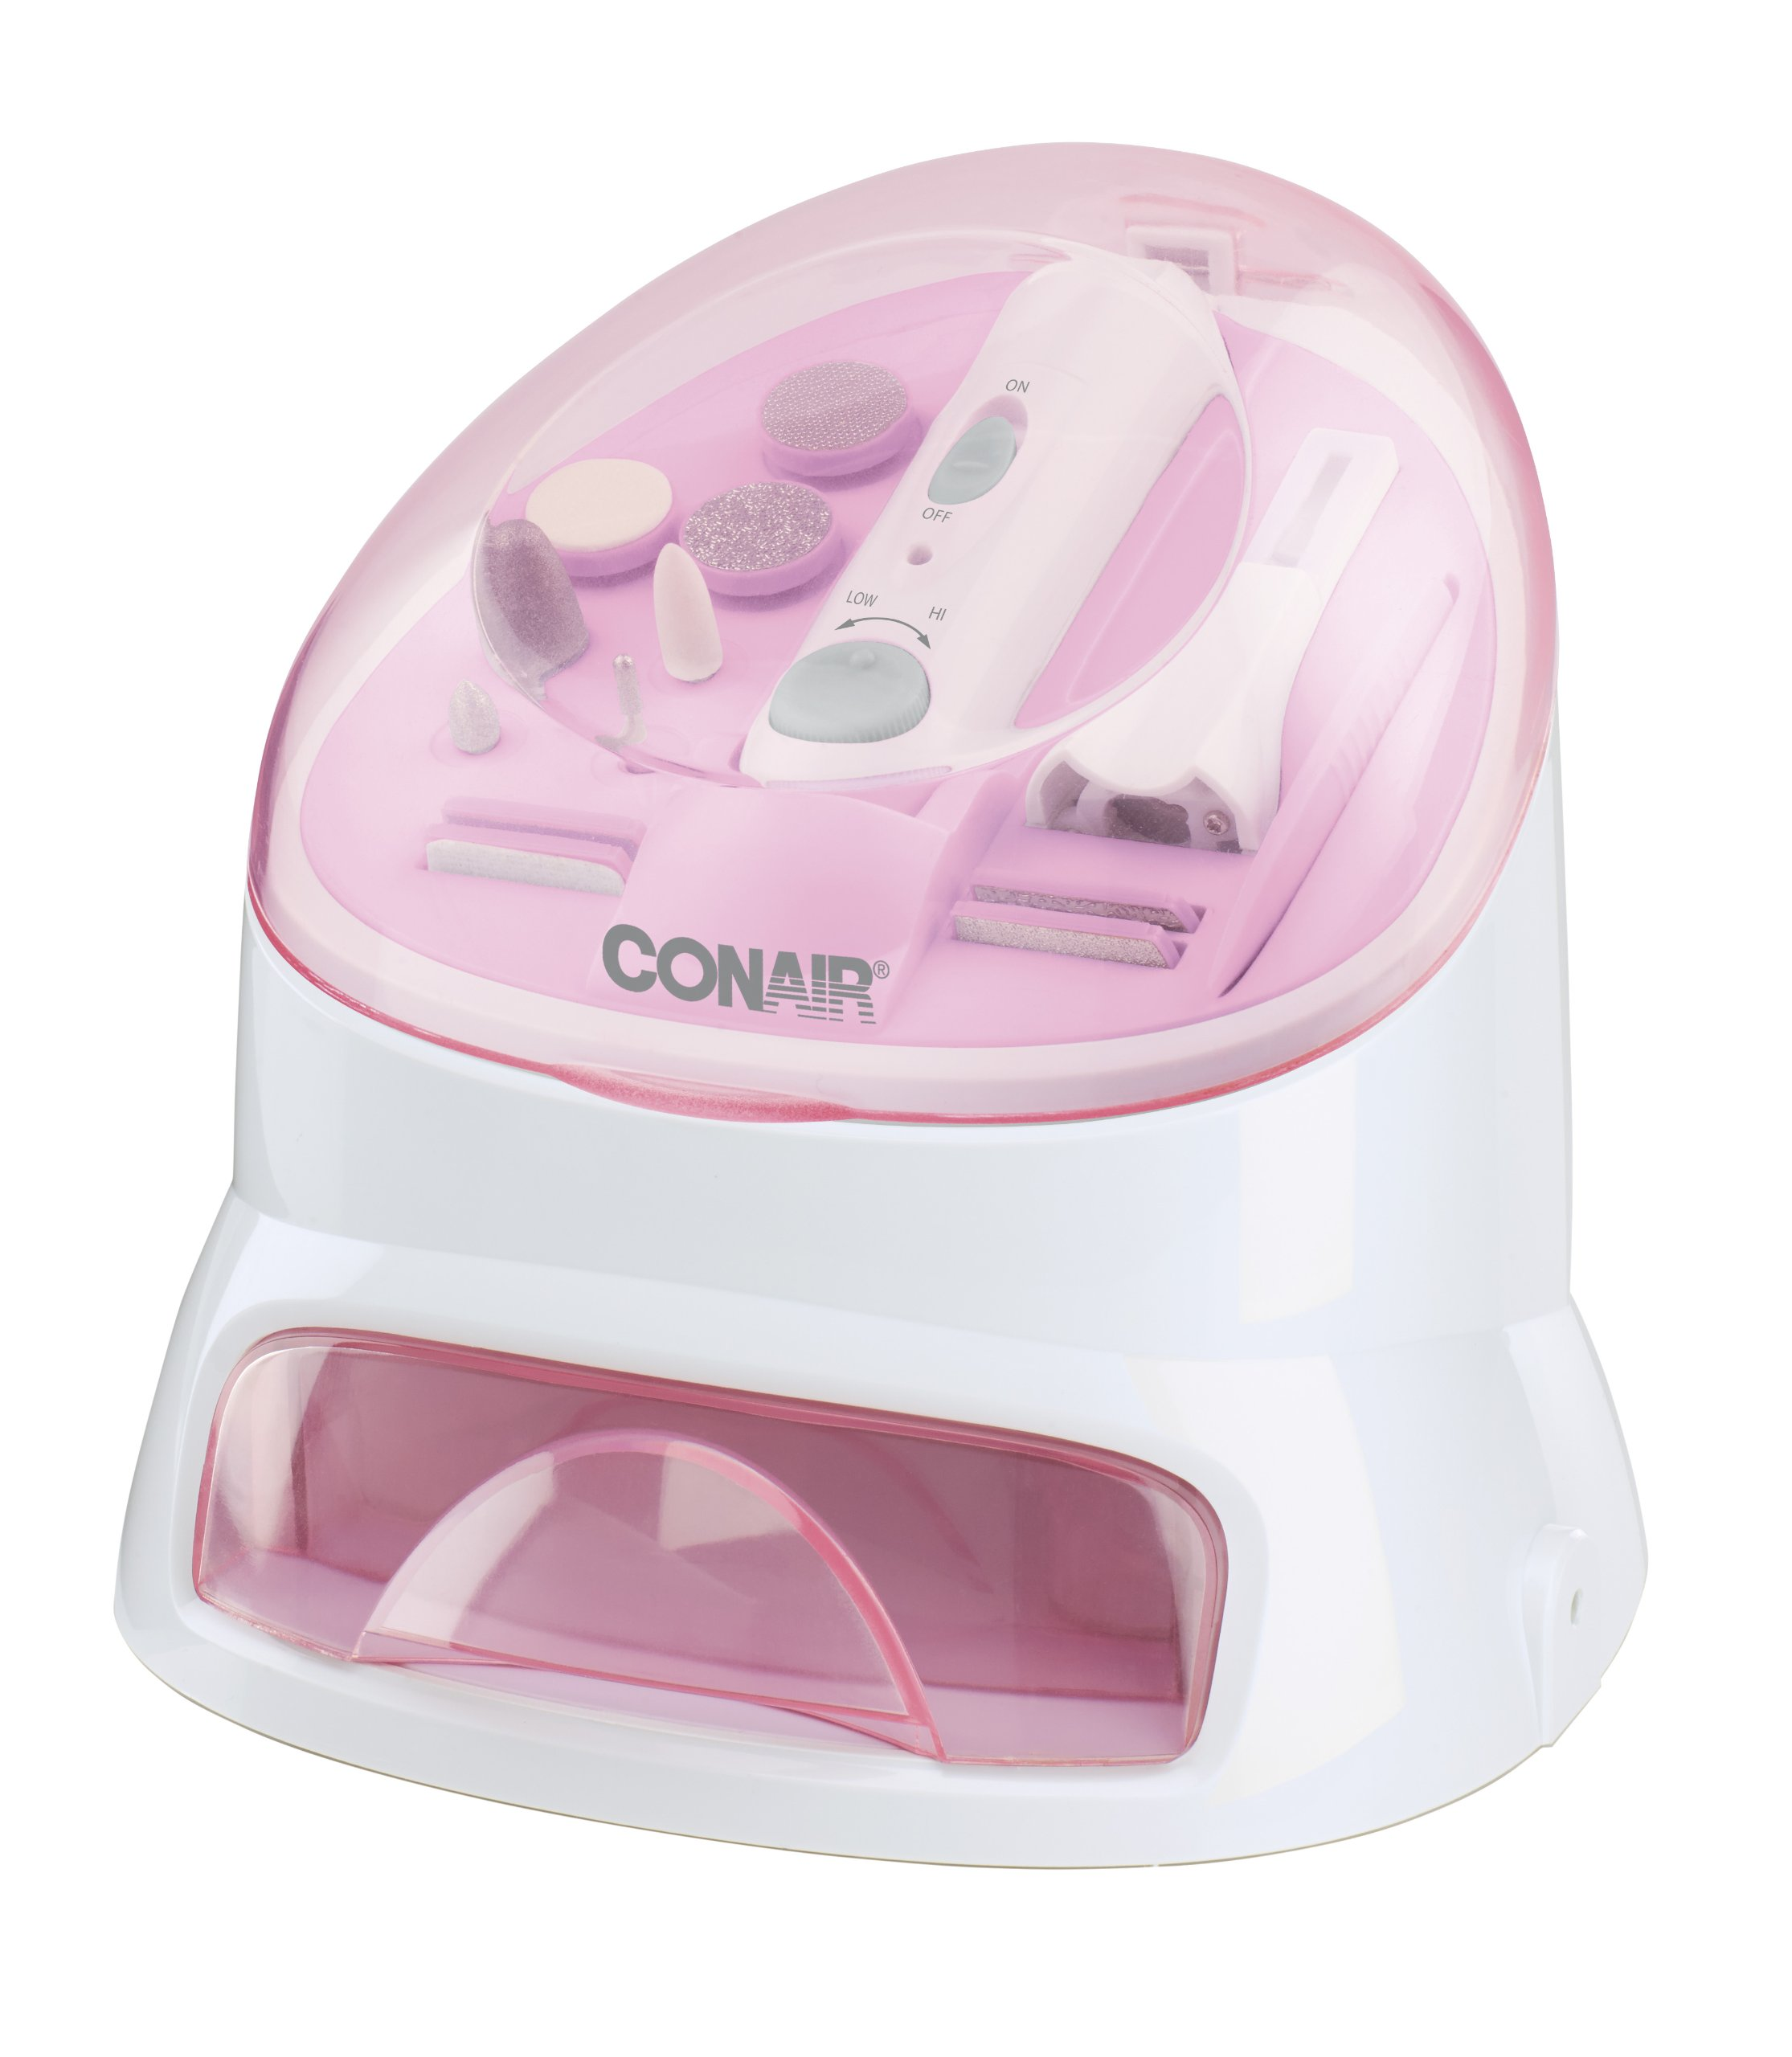 True Glow by Conair All-in-One Nail Care Center